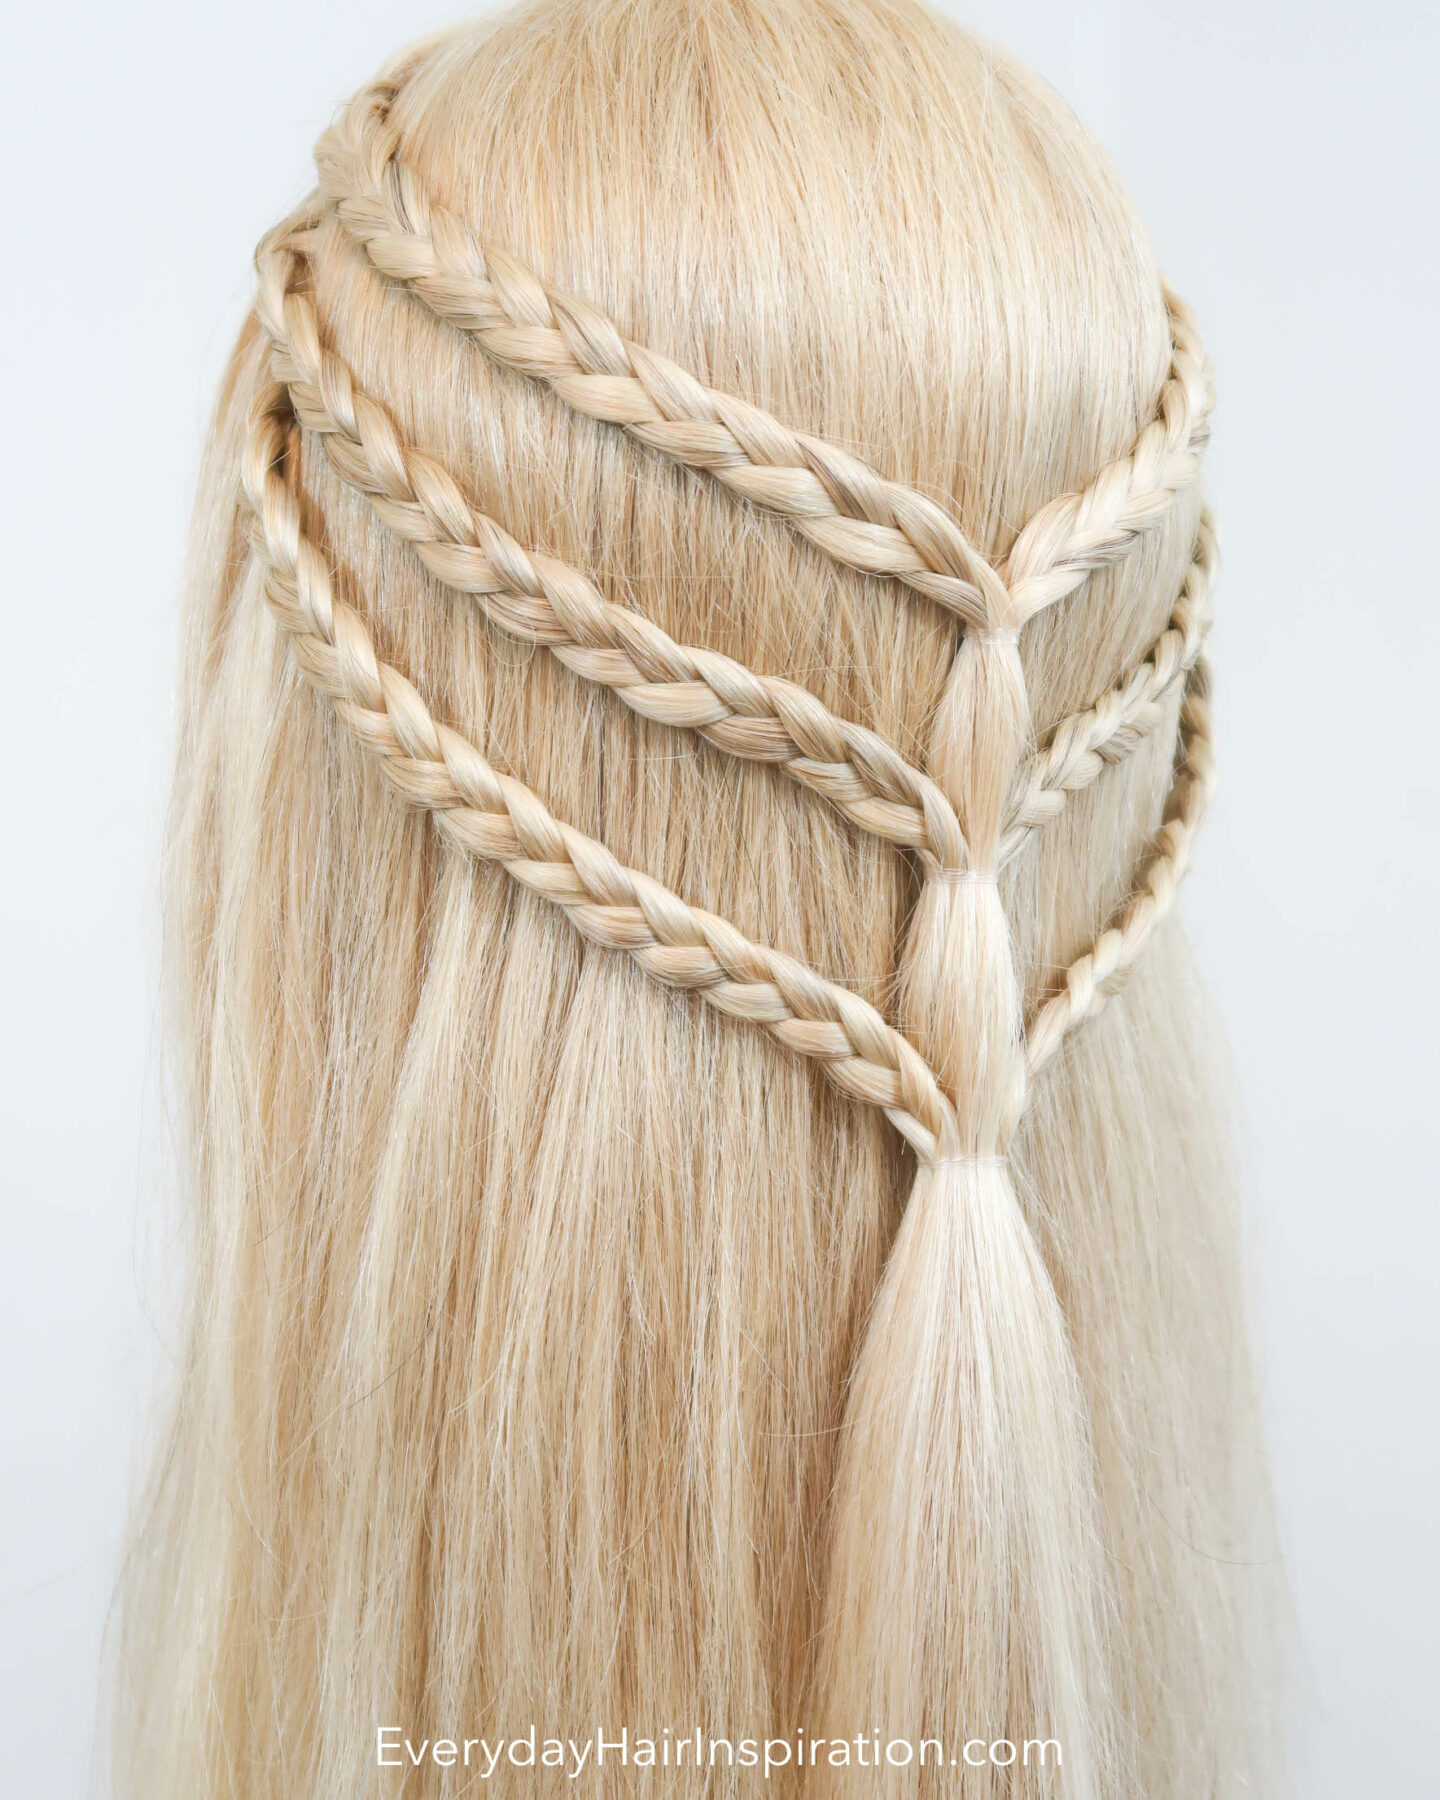 Blonde hairdresser doll with a triple braided half up half down hairstyle seen from the back at an angle